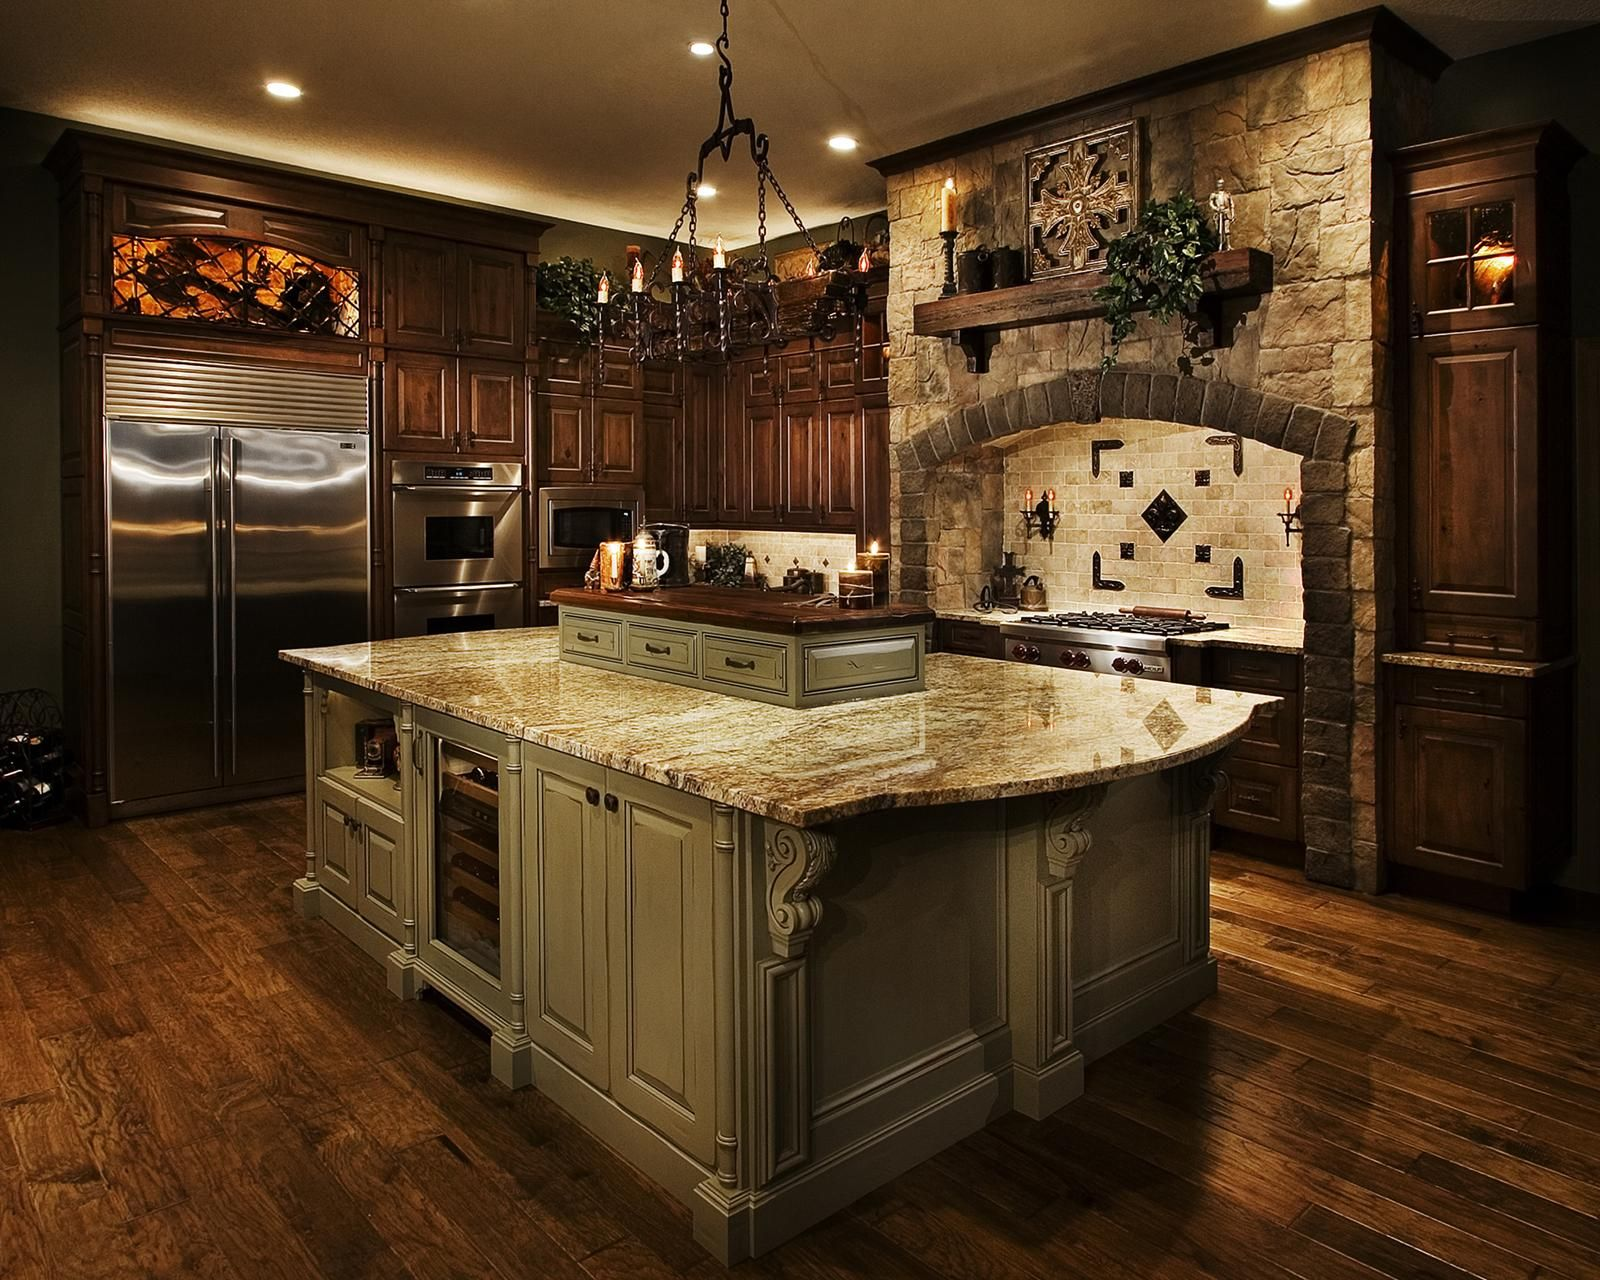 Dark Cabinets Light Island Cabinets Old World Tuscan Country Old World Kitchens House Design Kitchen Kitchen Styling